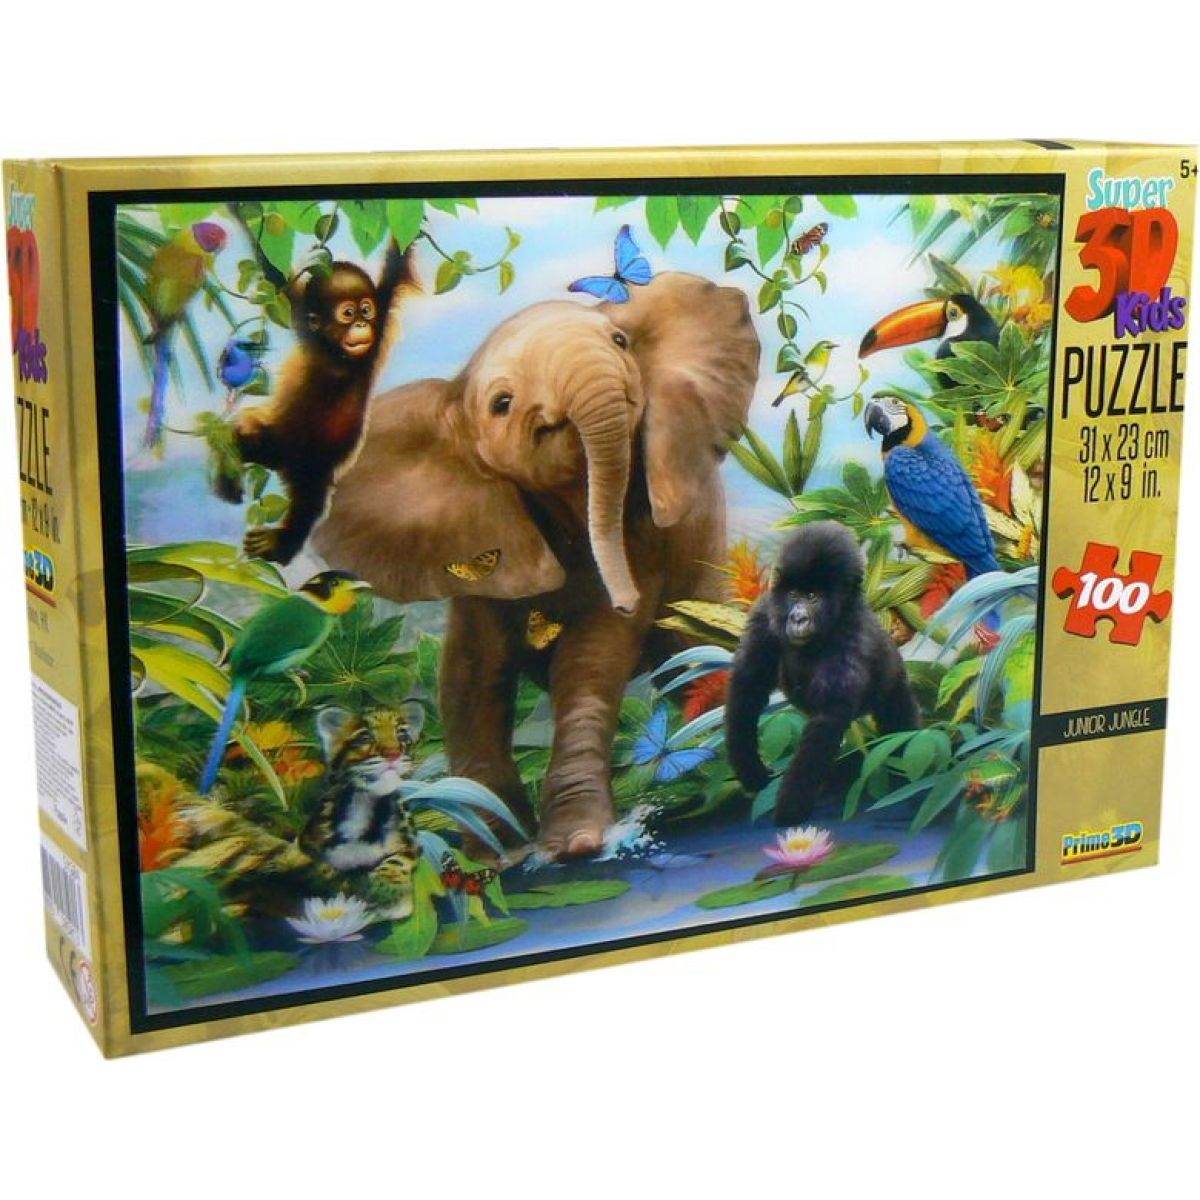 3D Puzzle Kids Jungle 100 dílků